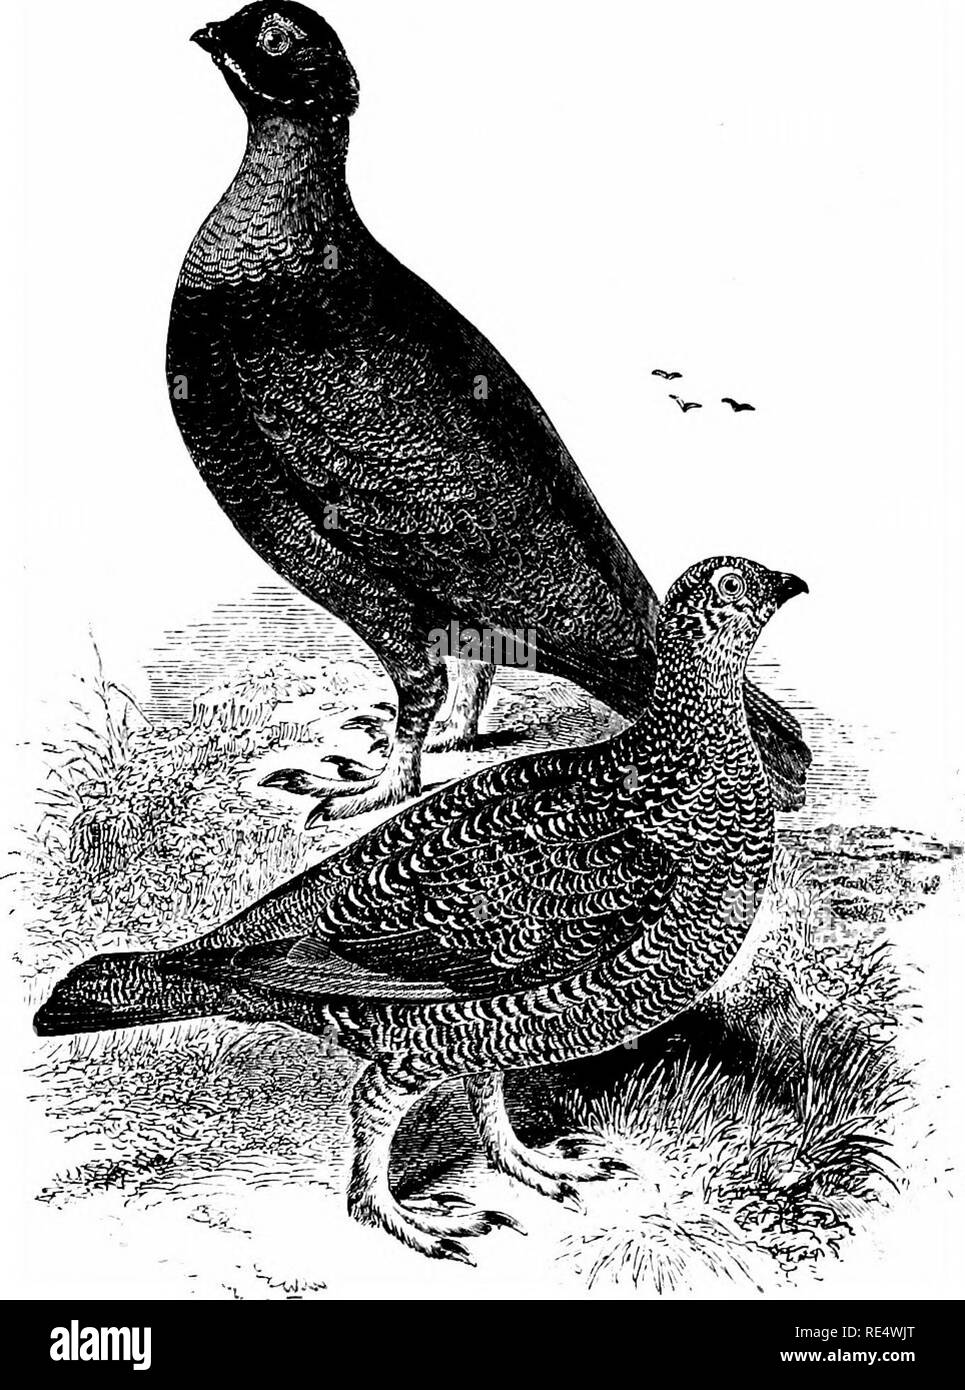 . An illustrated manual of British birds. Birds. TETRAONID/E. 495. THE RED GROUSE. Lag(5pus sc6ticus (Latham). This species, indigenous only to the British Islands, is our repre- sentative of the Willow-Grouse (Z. albus), the latter inhabiting the northern portions of Europe, Asia and America. In Scotland, from which the Red Grouse derives its specific name, the bird is generally distributed over the moors of the mainland, from the highest point where ling (Callund) and heath {Erica) flourish, down to the coast-line; while it also occurs in the Inner and most of the Outer Hebrides, and remarka - Stock Image